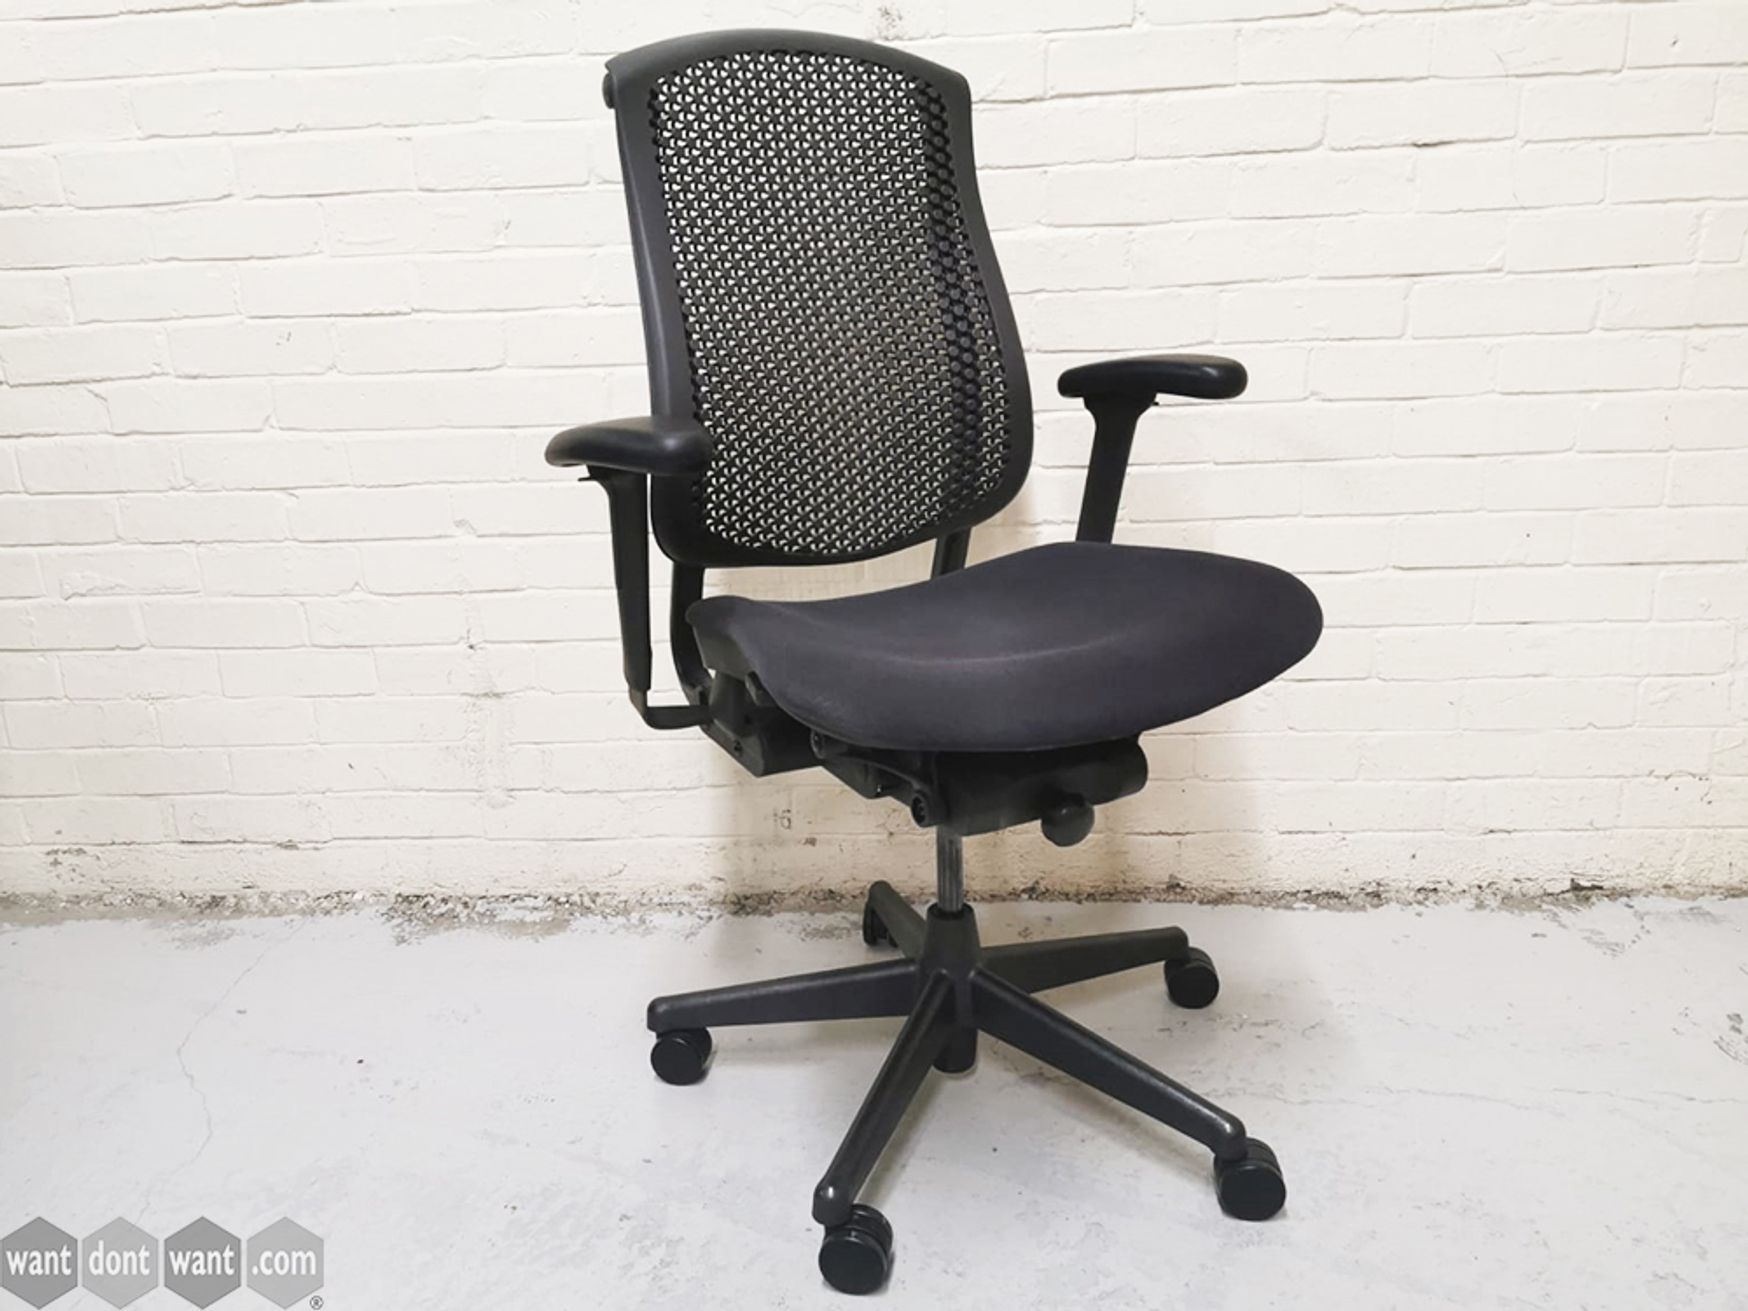 Used Herman Miller Celle Chairs with Fabric Seat